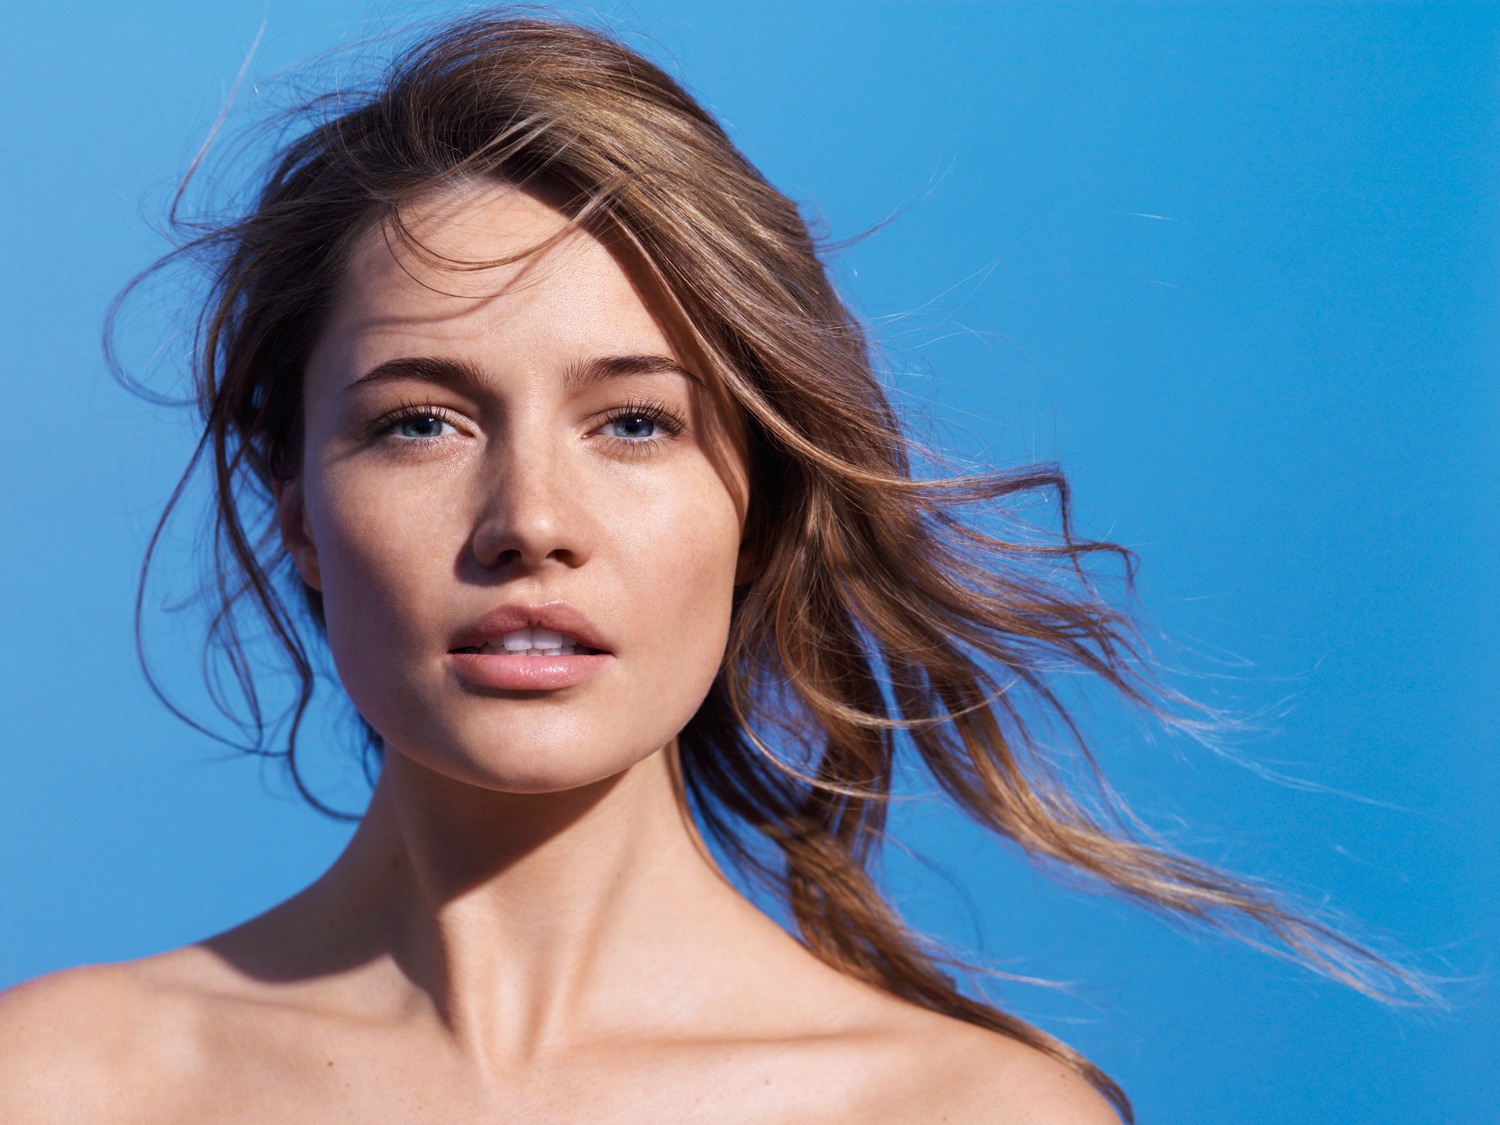 An advertisement for La Roche-Posay featuring a female model against a blue background.